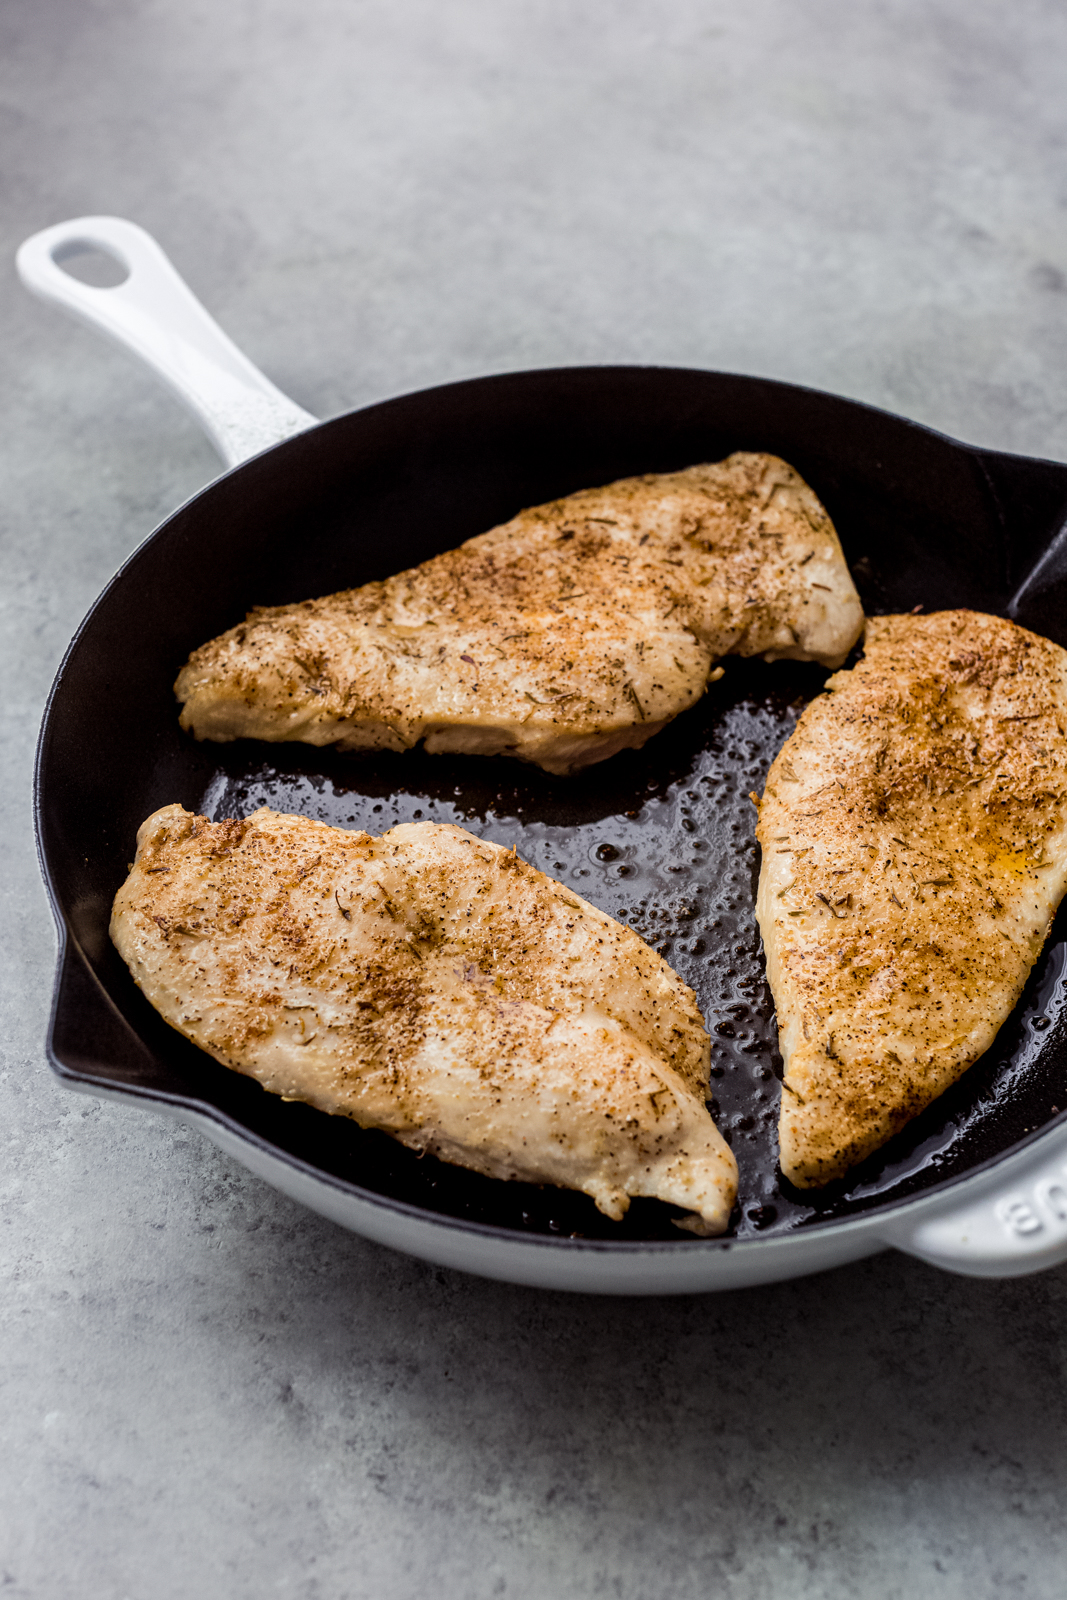 skillet with seasoned and seared chicken breasts ready for the oven